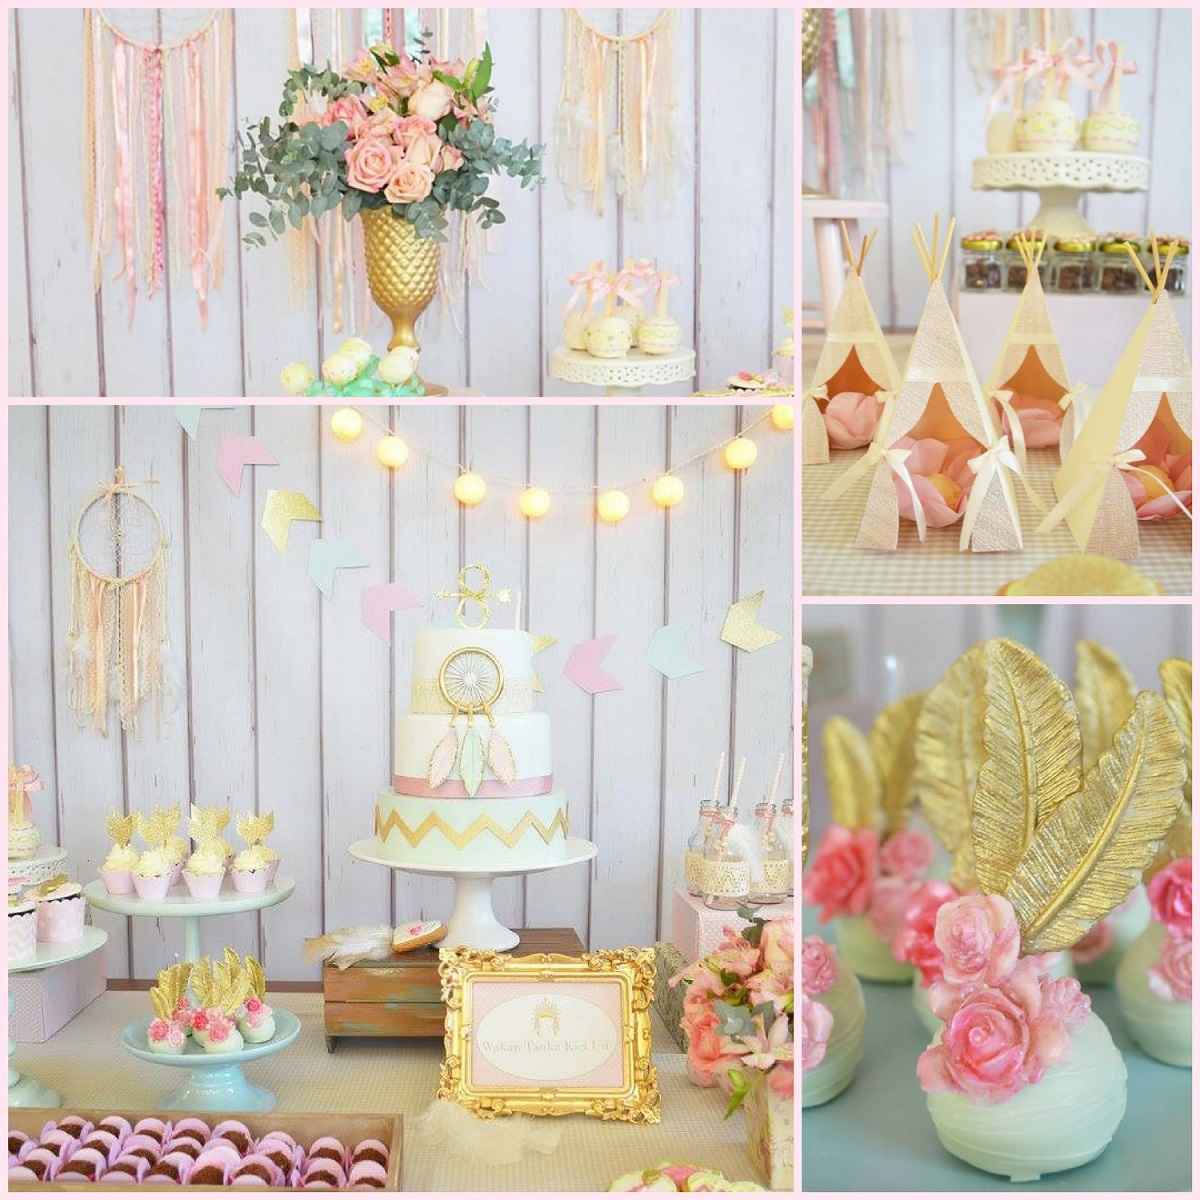 pastel boho chic party baby shower ideas themes games. Black Bedroom Furniture Sets. Home Design Ideas